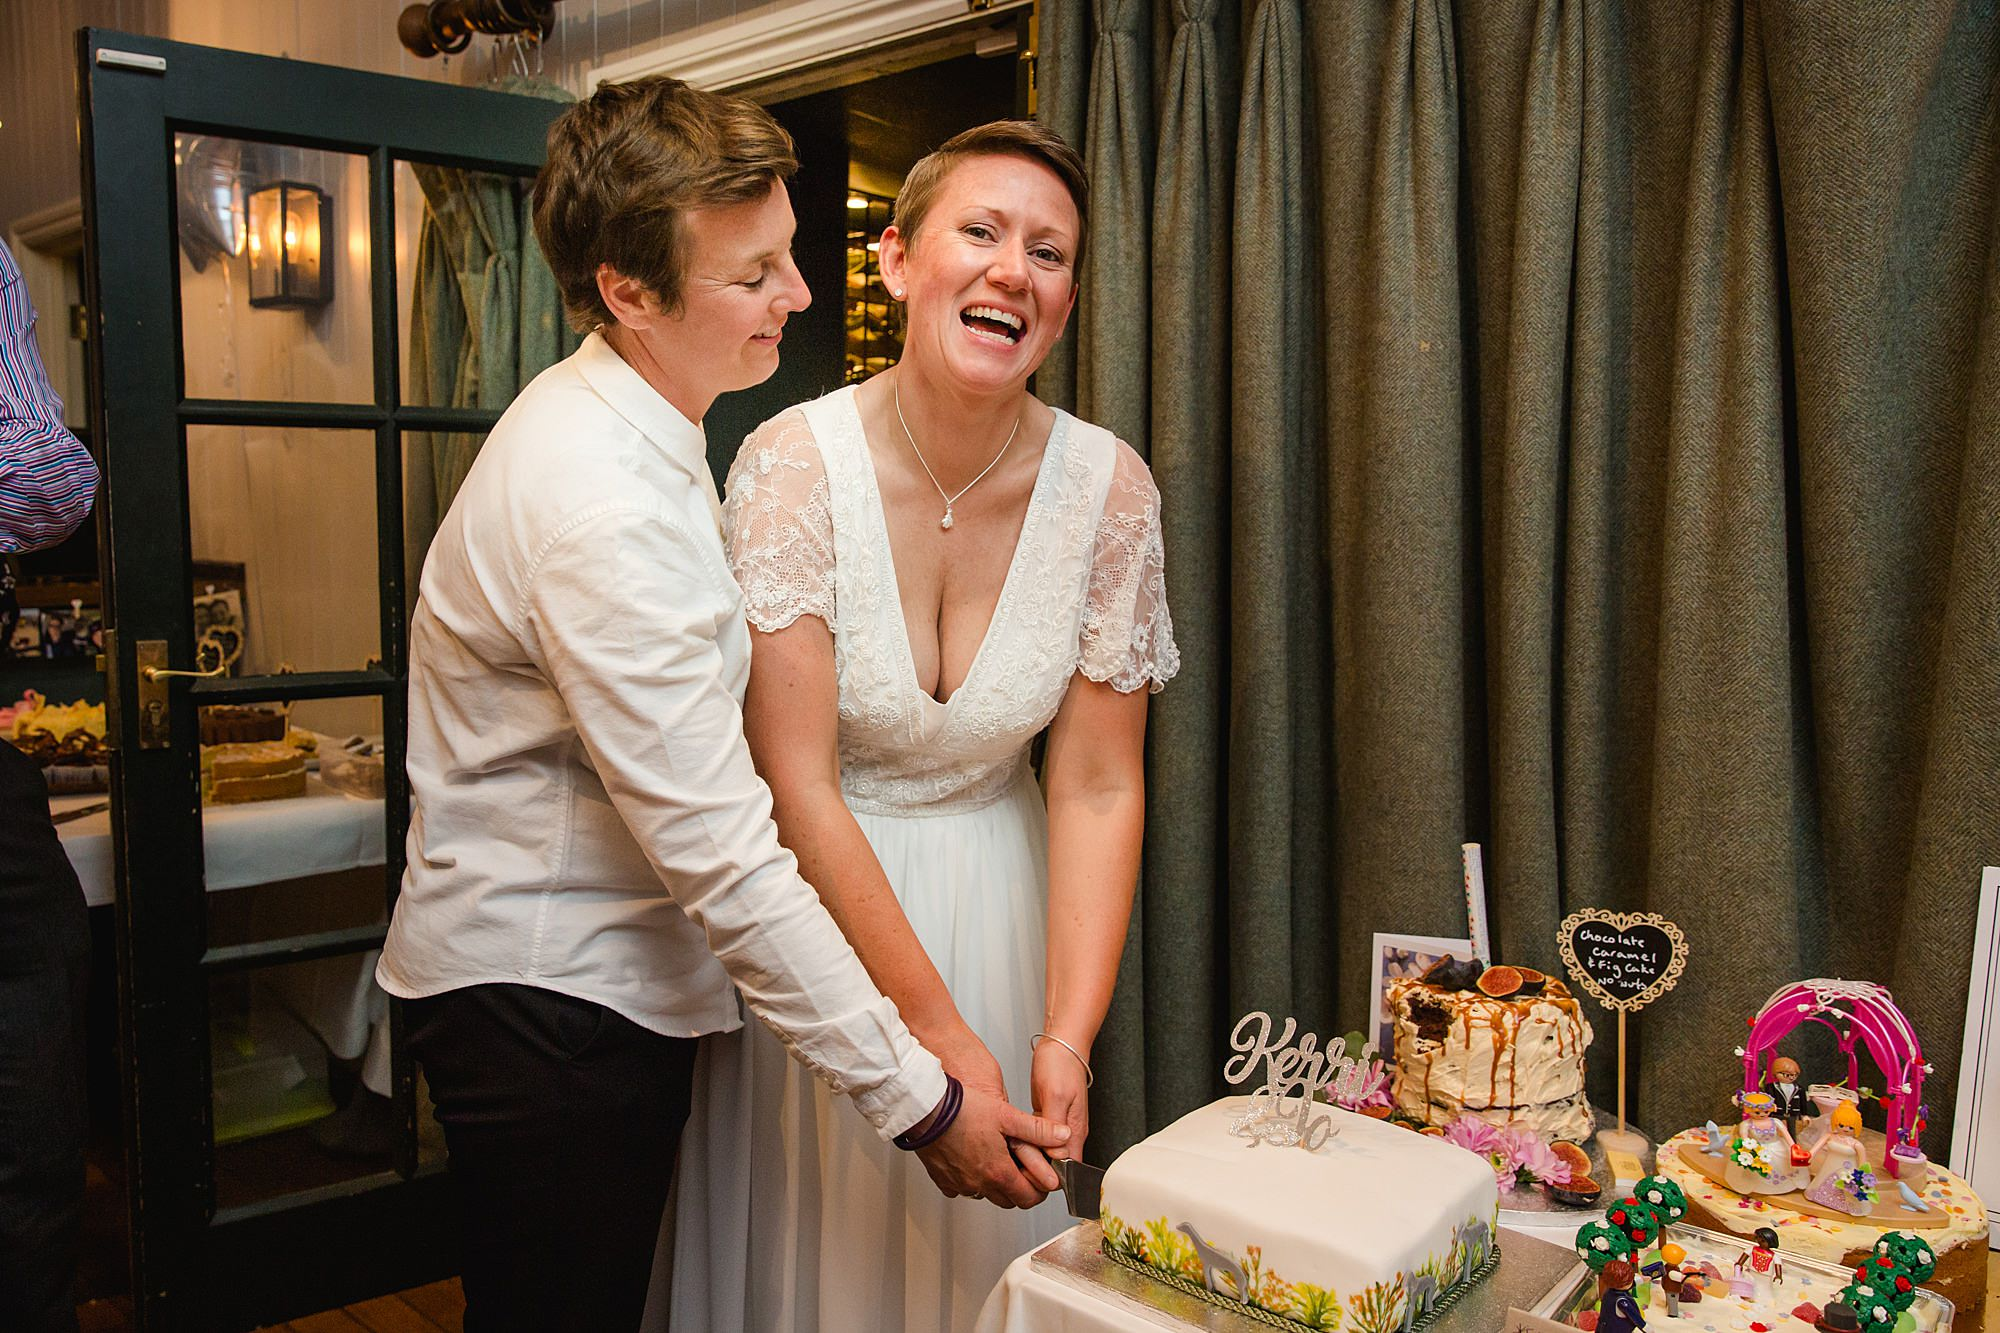 Twickenham wedding photography brides laugh and cut cake